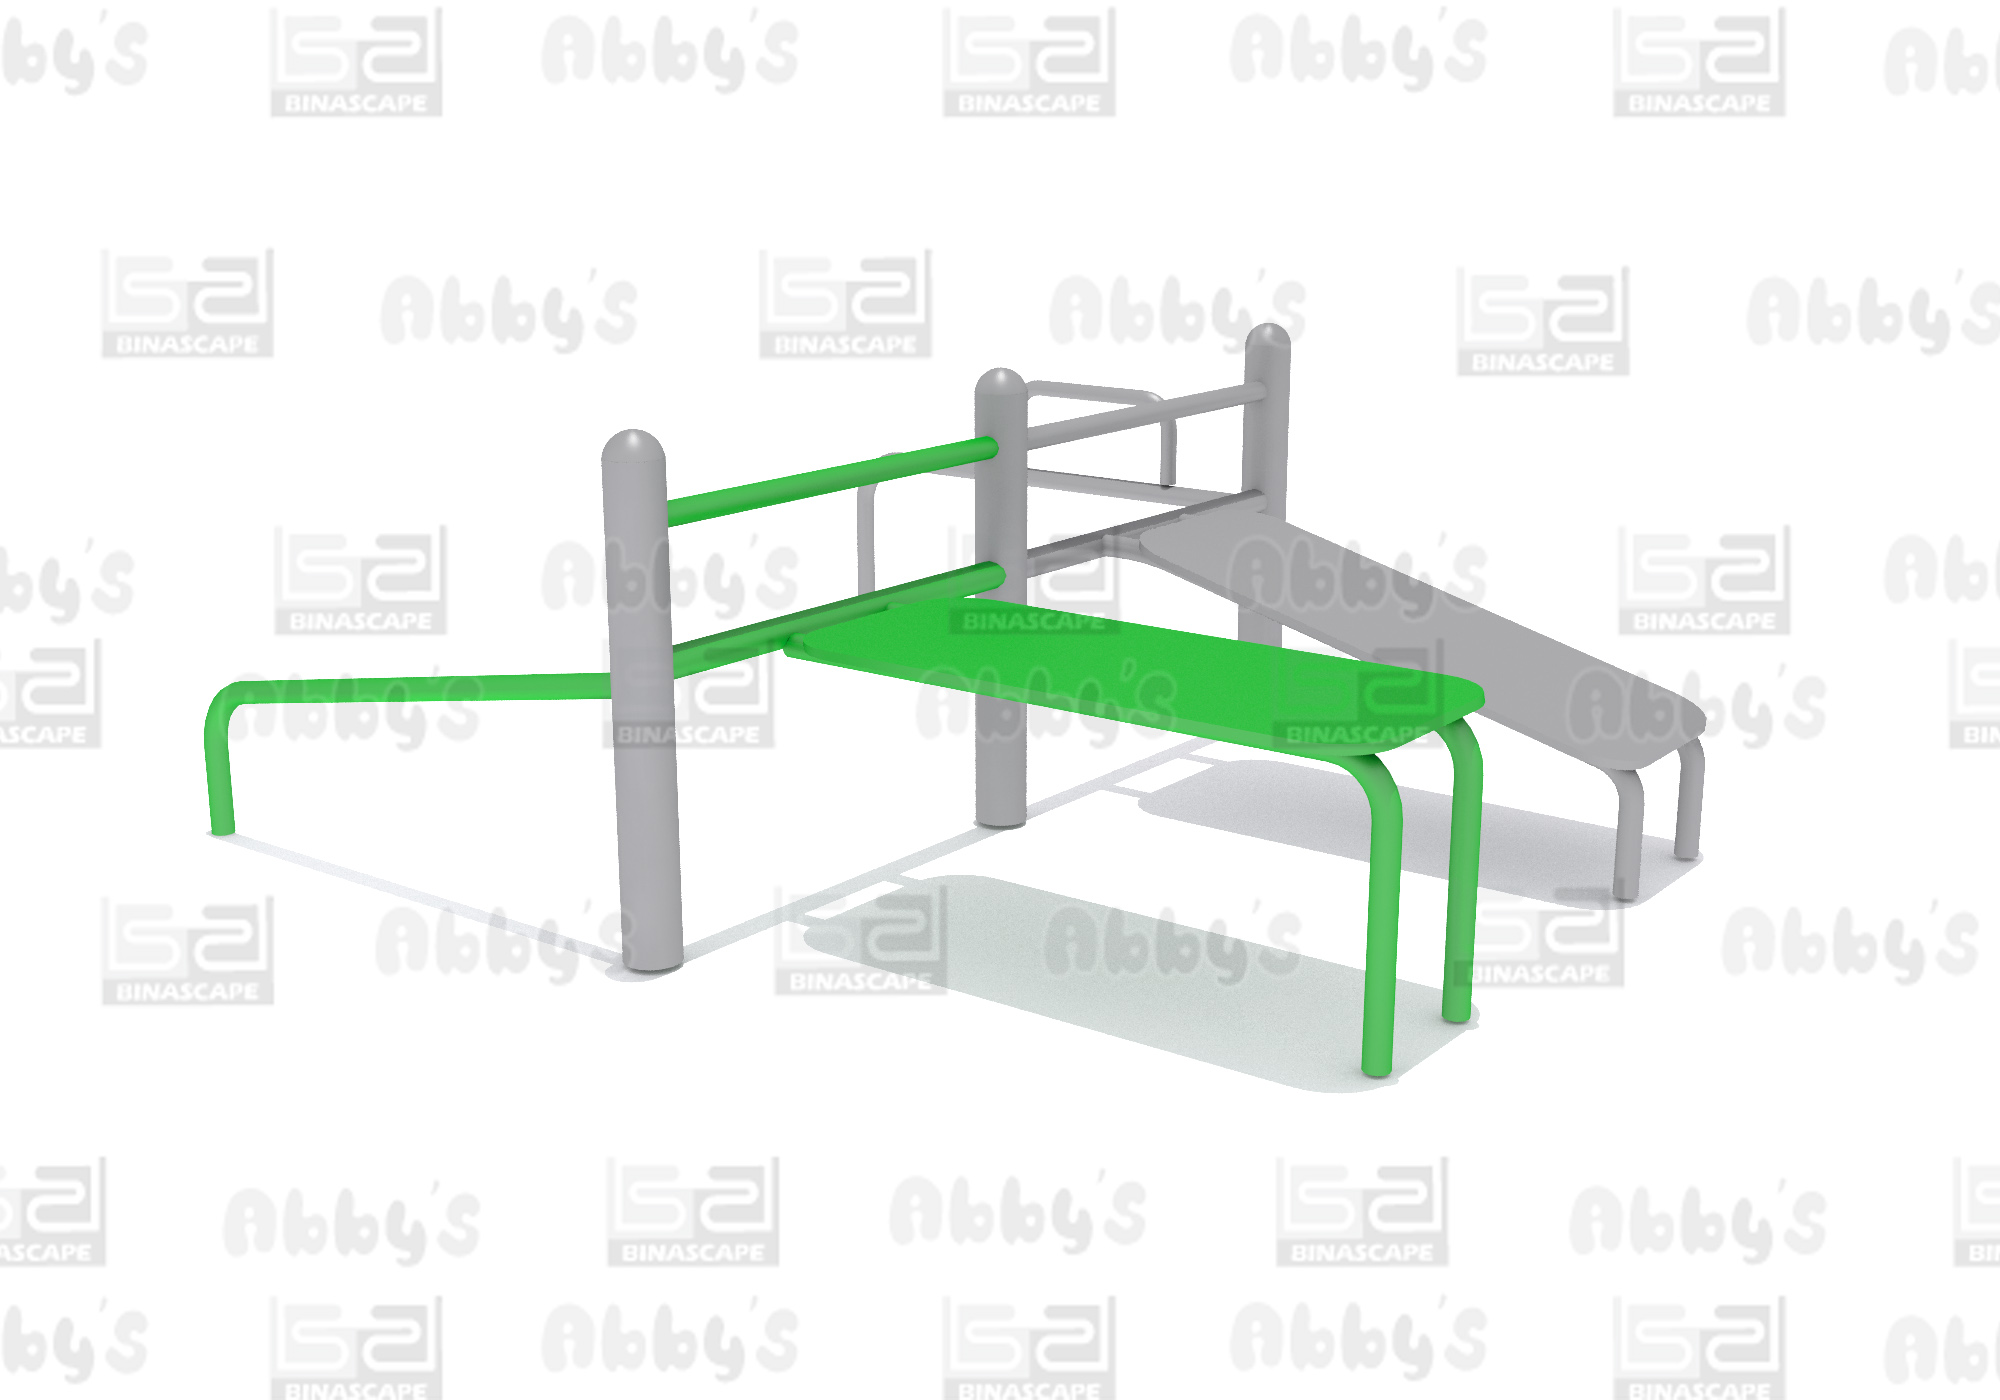 bS 010FC - MULTI BENCH TRAINER